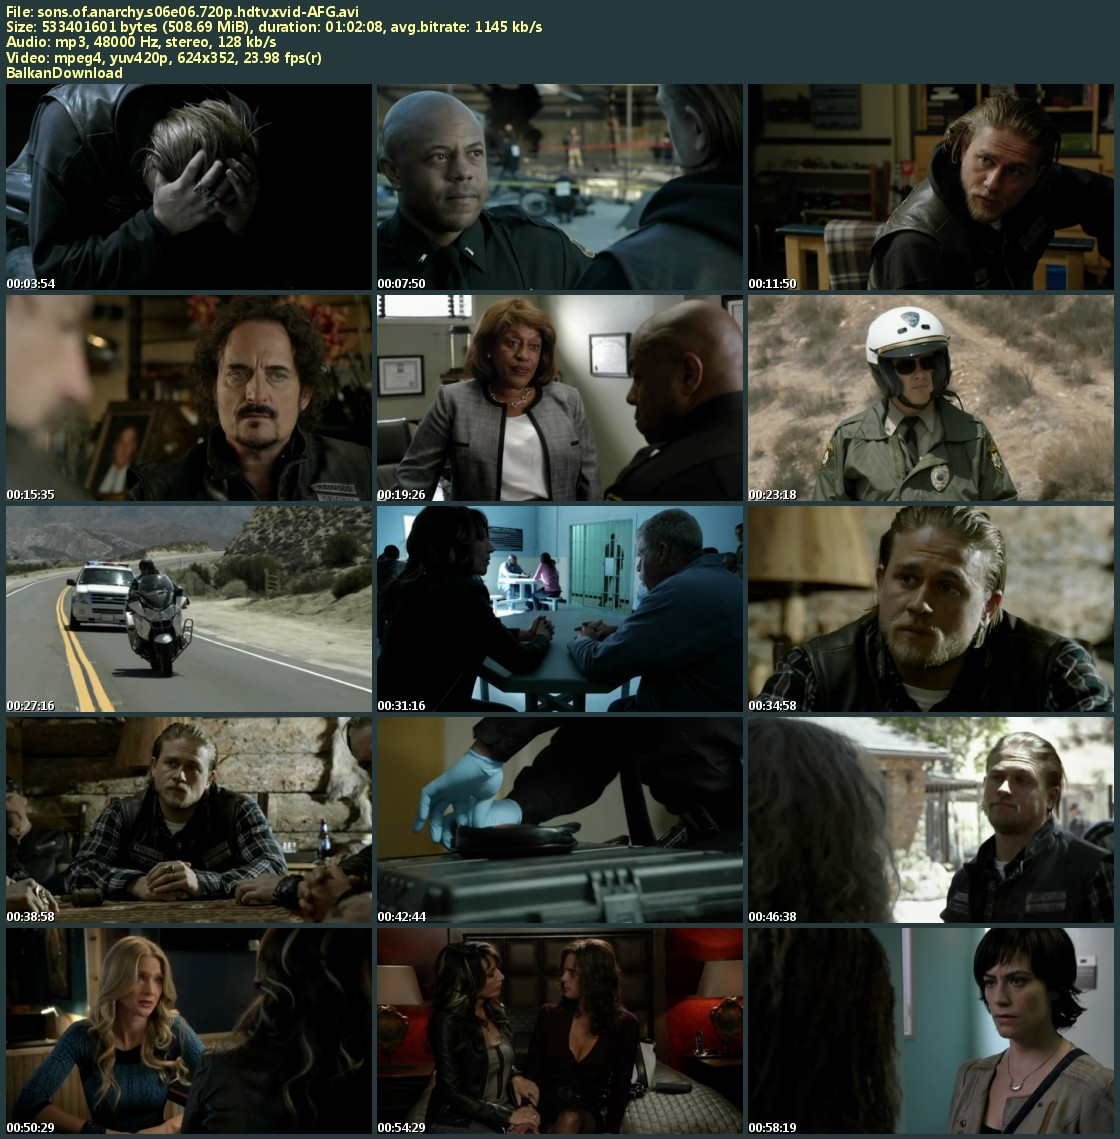 sons.of.anarchy.s06e0gwskv.jpg